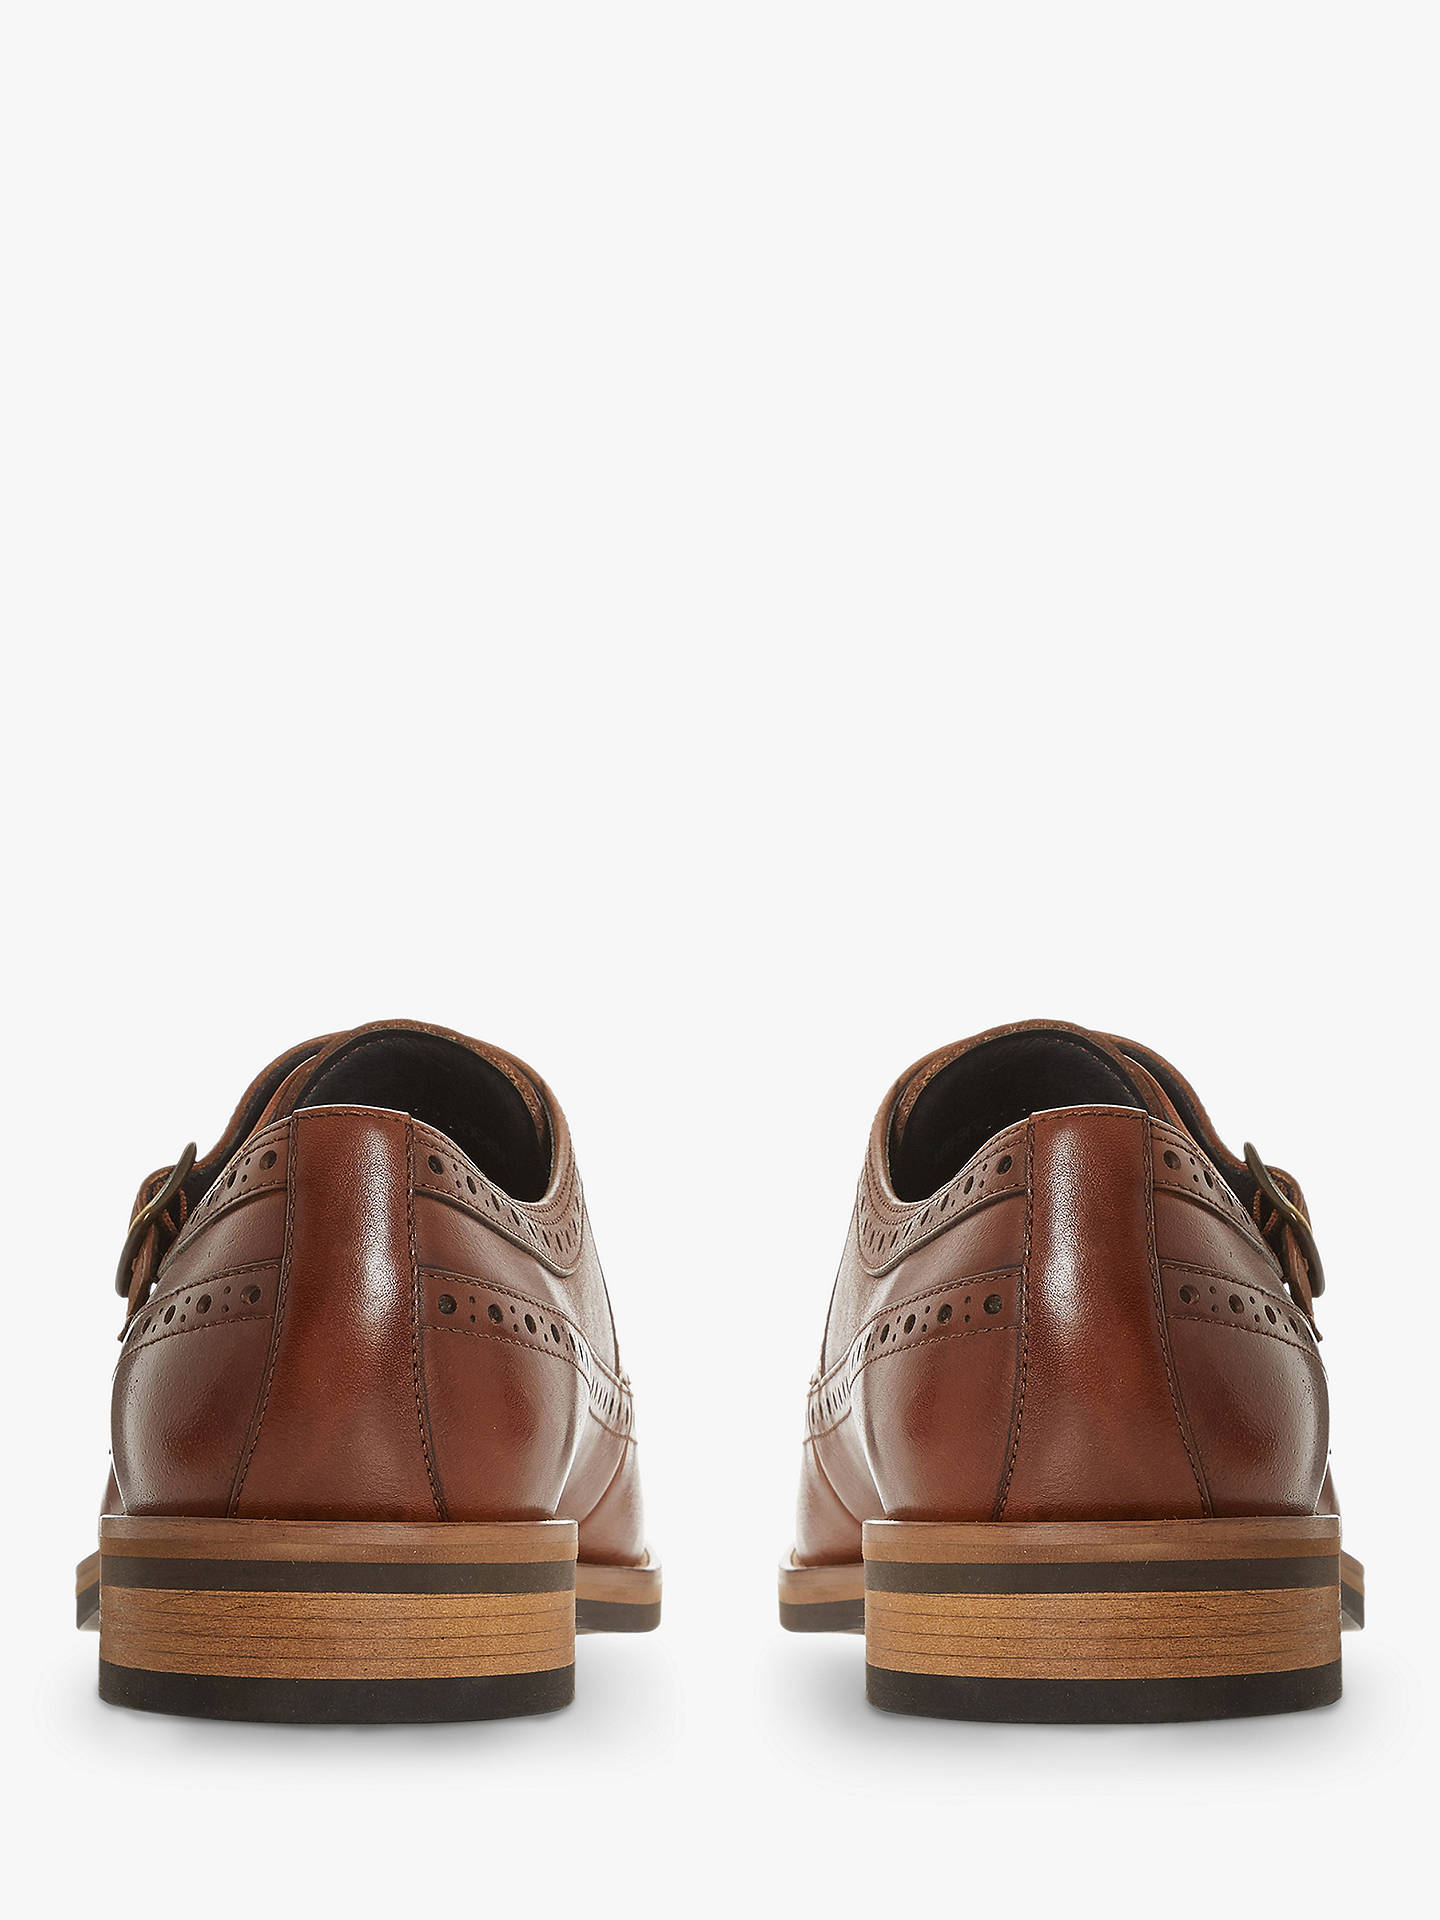 Buy Bertie Preach II Double Strap Monk Shoes, Tan, 6 Online at johnlewis.com